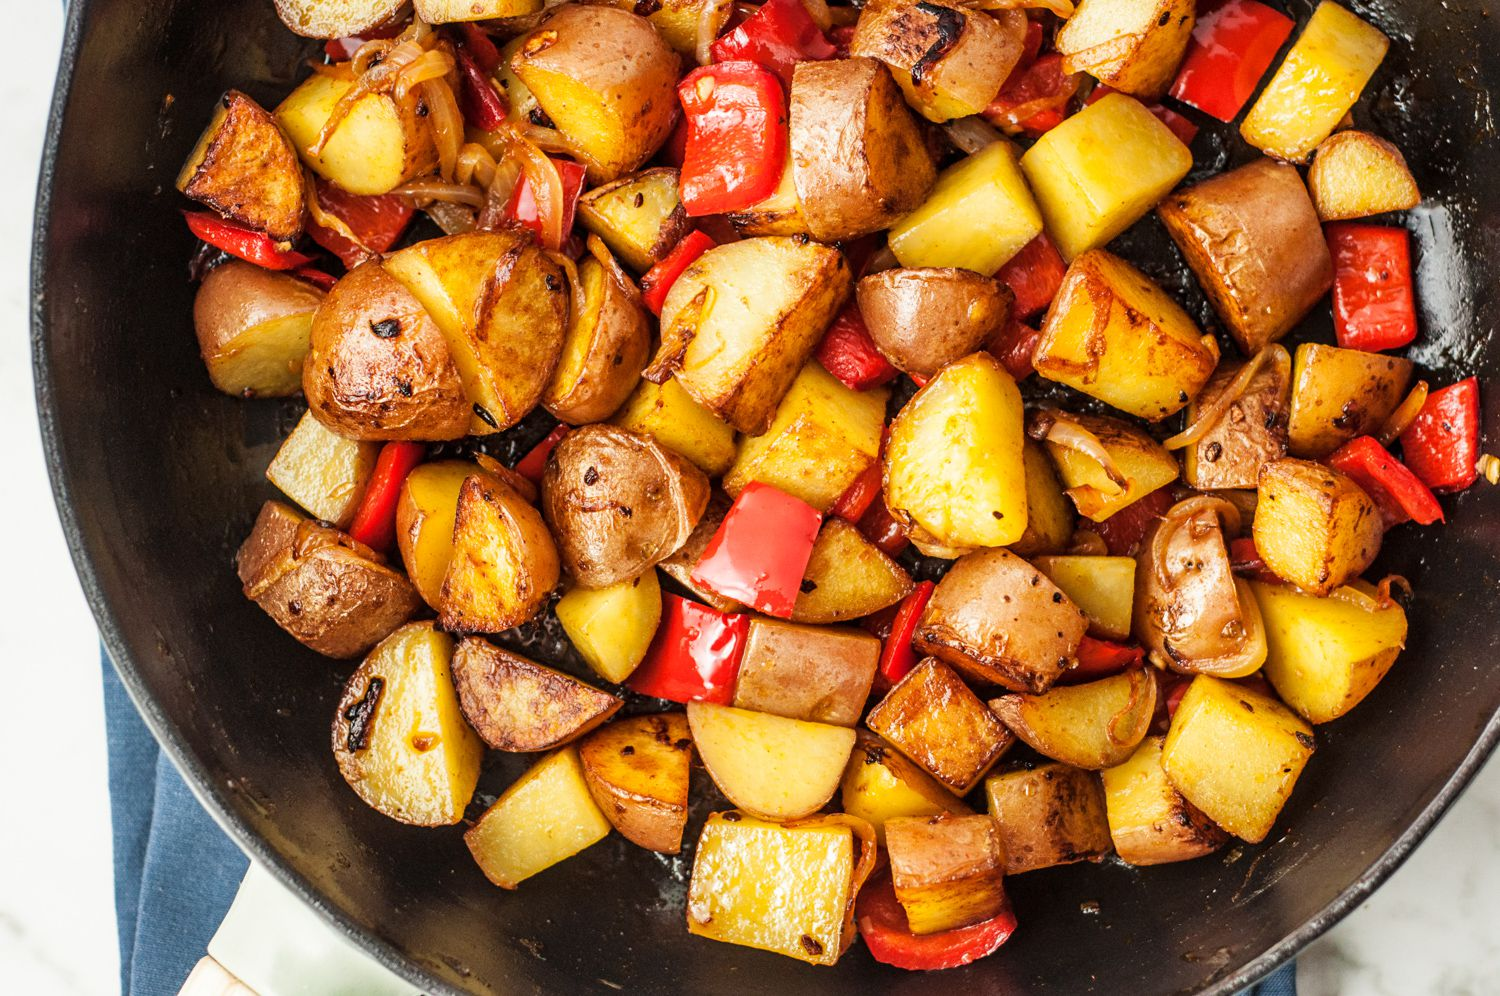 Fantastic Easy Skillet Fried Potatoes 3059718 Step 2 5ba024b146e0fb0025810781 Fried Red Potatoes Oven Fried Red Potatoes Butter nice food Fried Red Potatoes